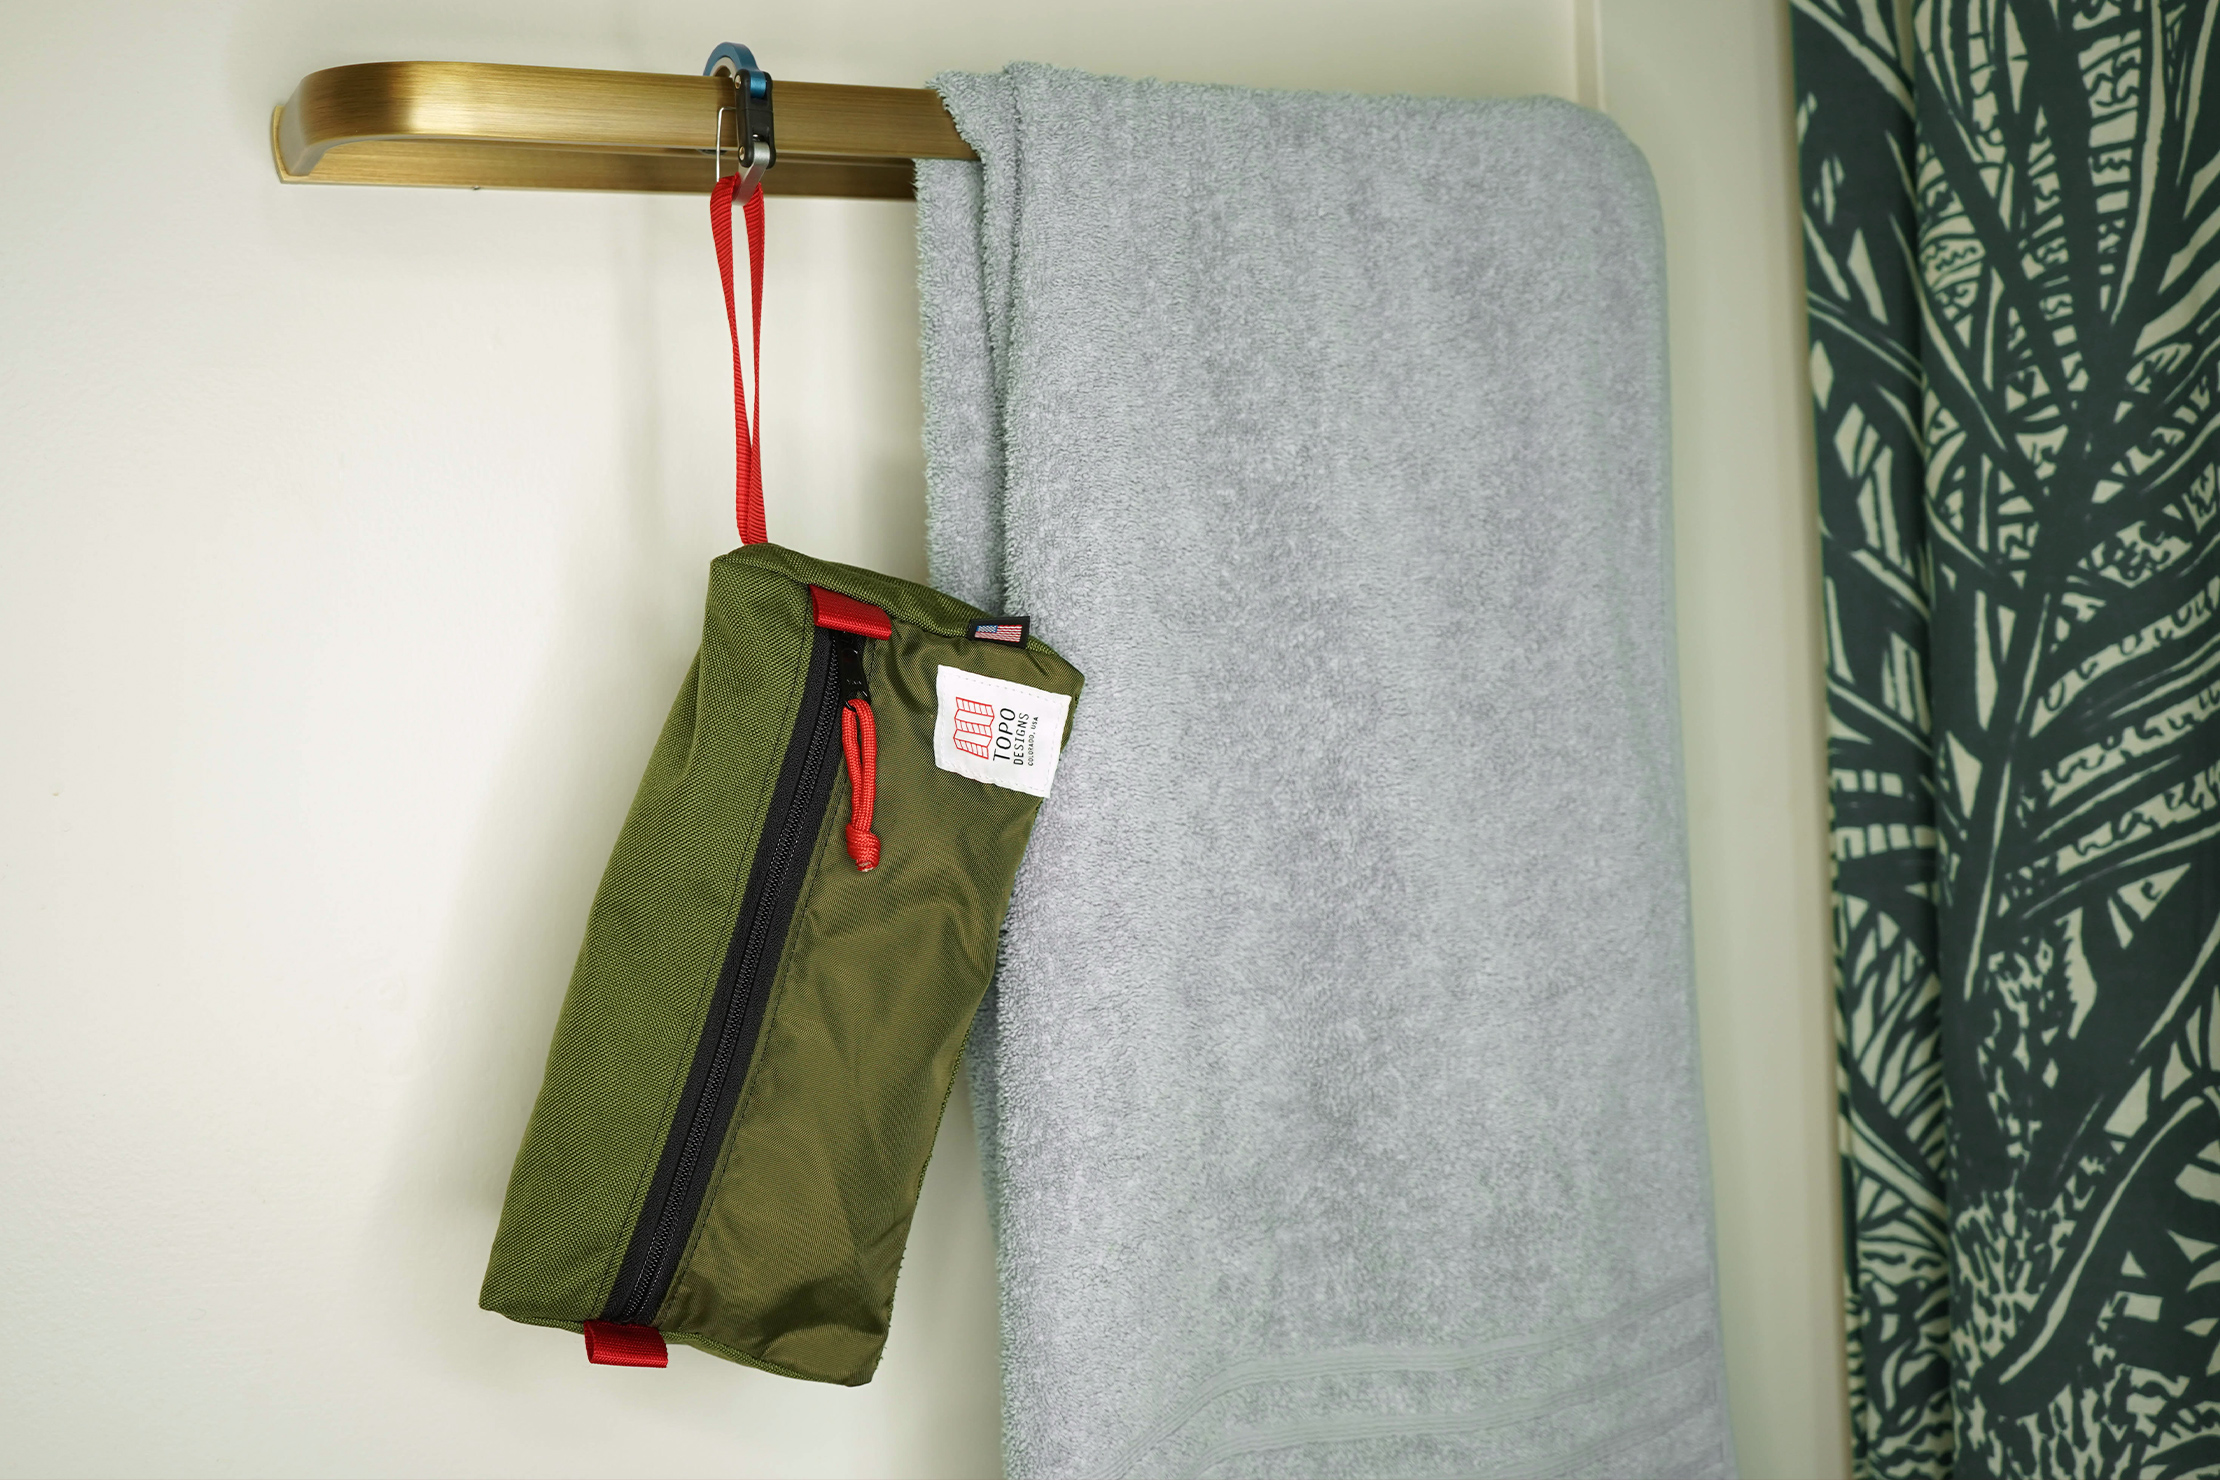 Topo Designs Dopp Kit Hanging Up